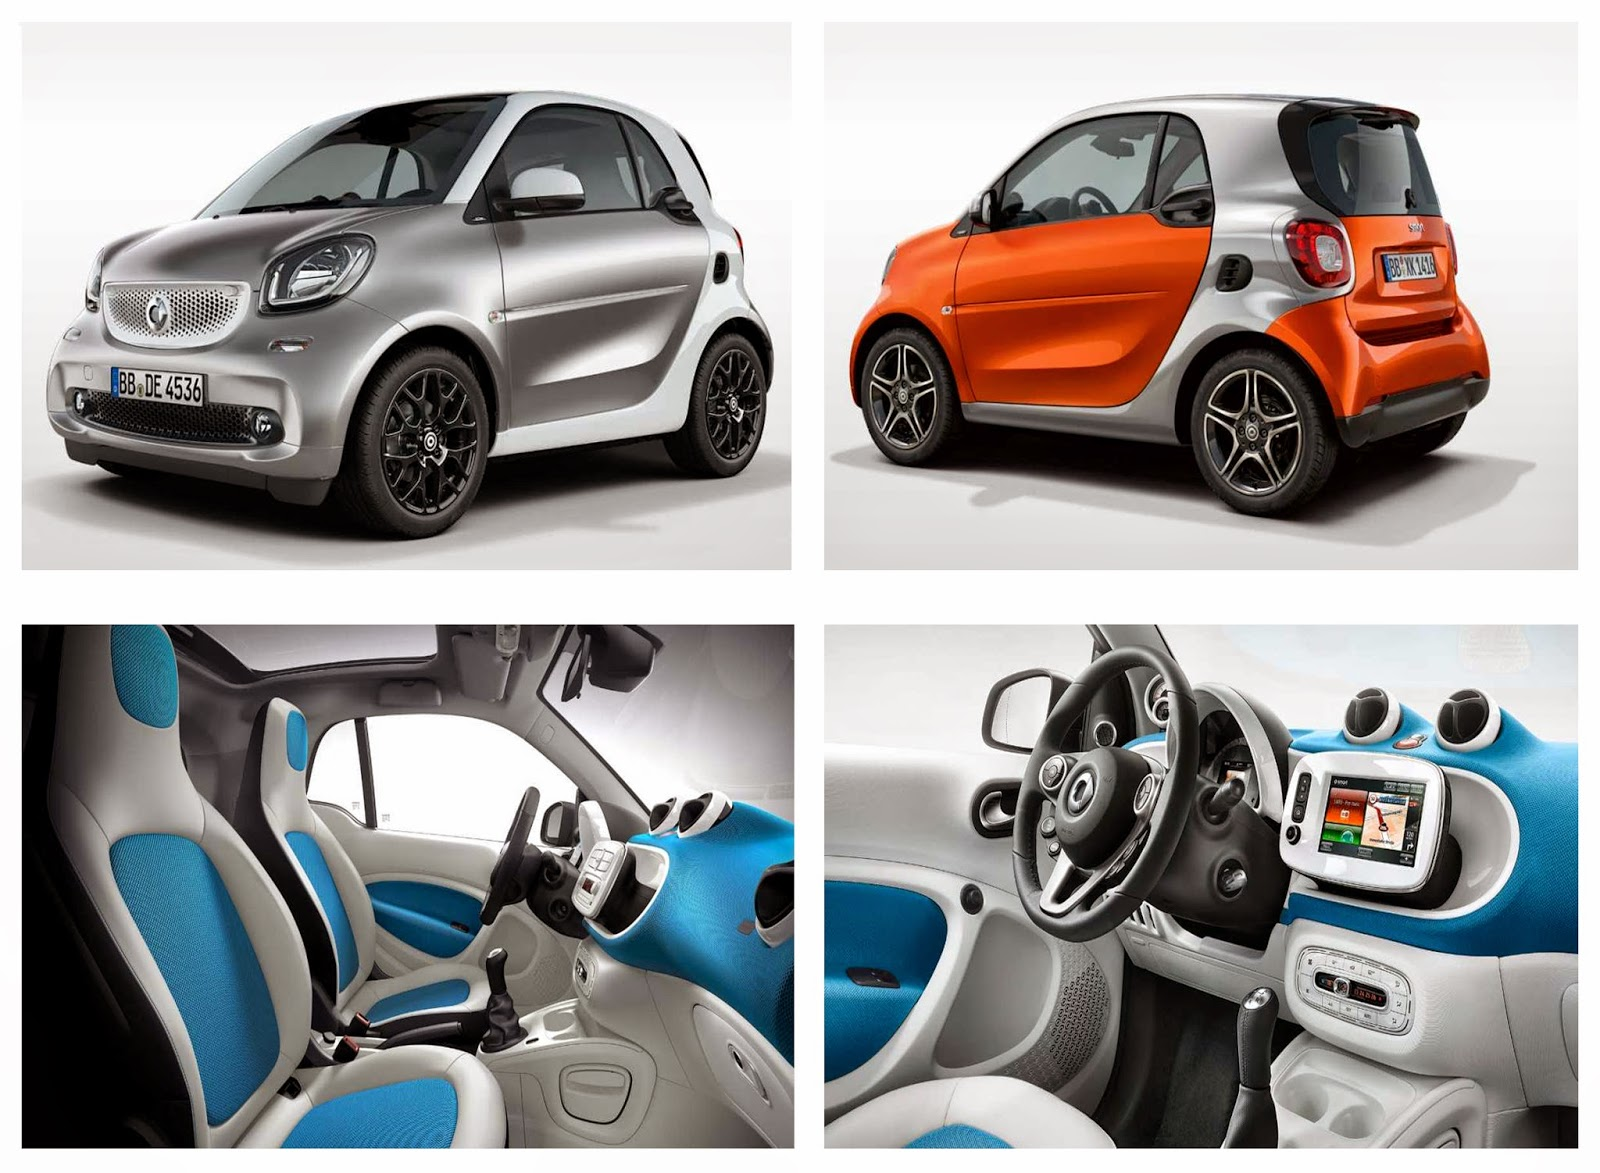 2016 Smart Forfour. Images via Smart.com